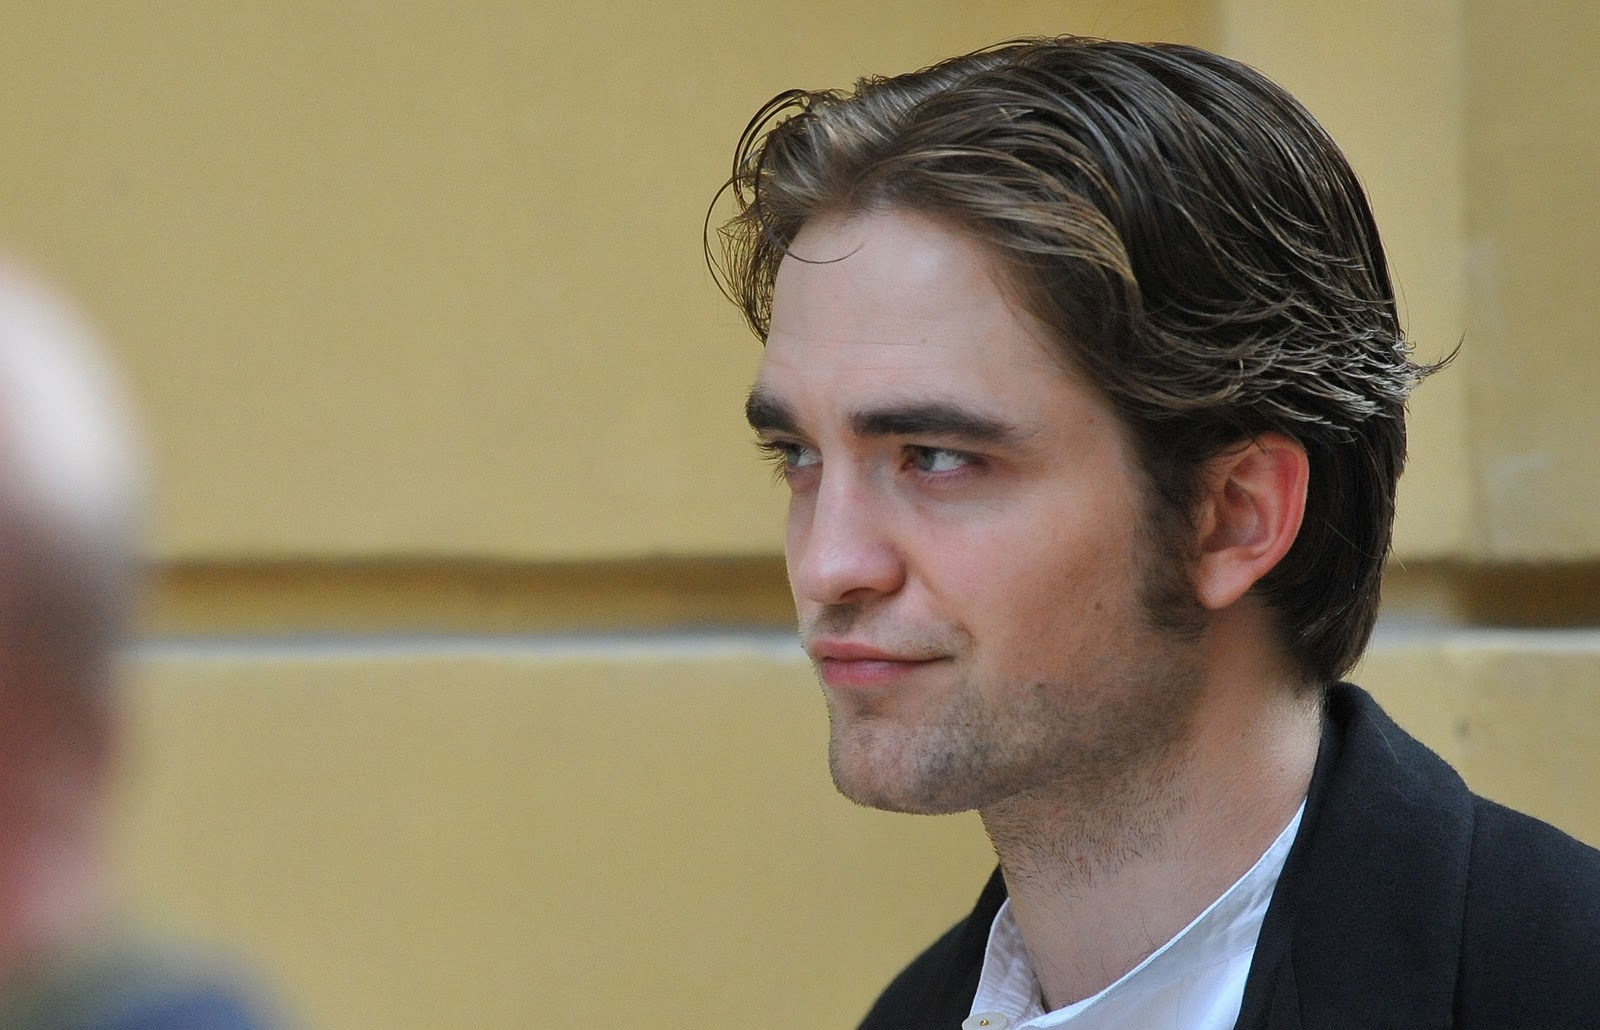 http://4.bp.blogspot.com/-k79h5Gil5Pc/TZNBgN4ByiI/AAAAAAAAAo8/Rs1oWy4VaaU/s1600/Rob-on-Bel-Ami-Set-in-Budapest-April-6th-robert-pattinson-11349241-2386-1536.jpg